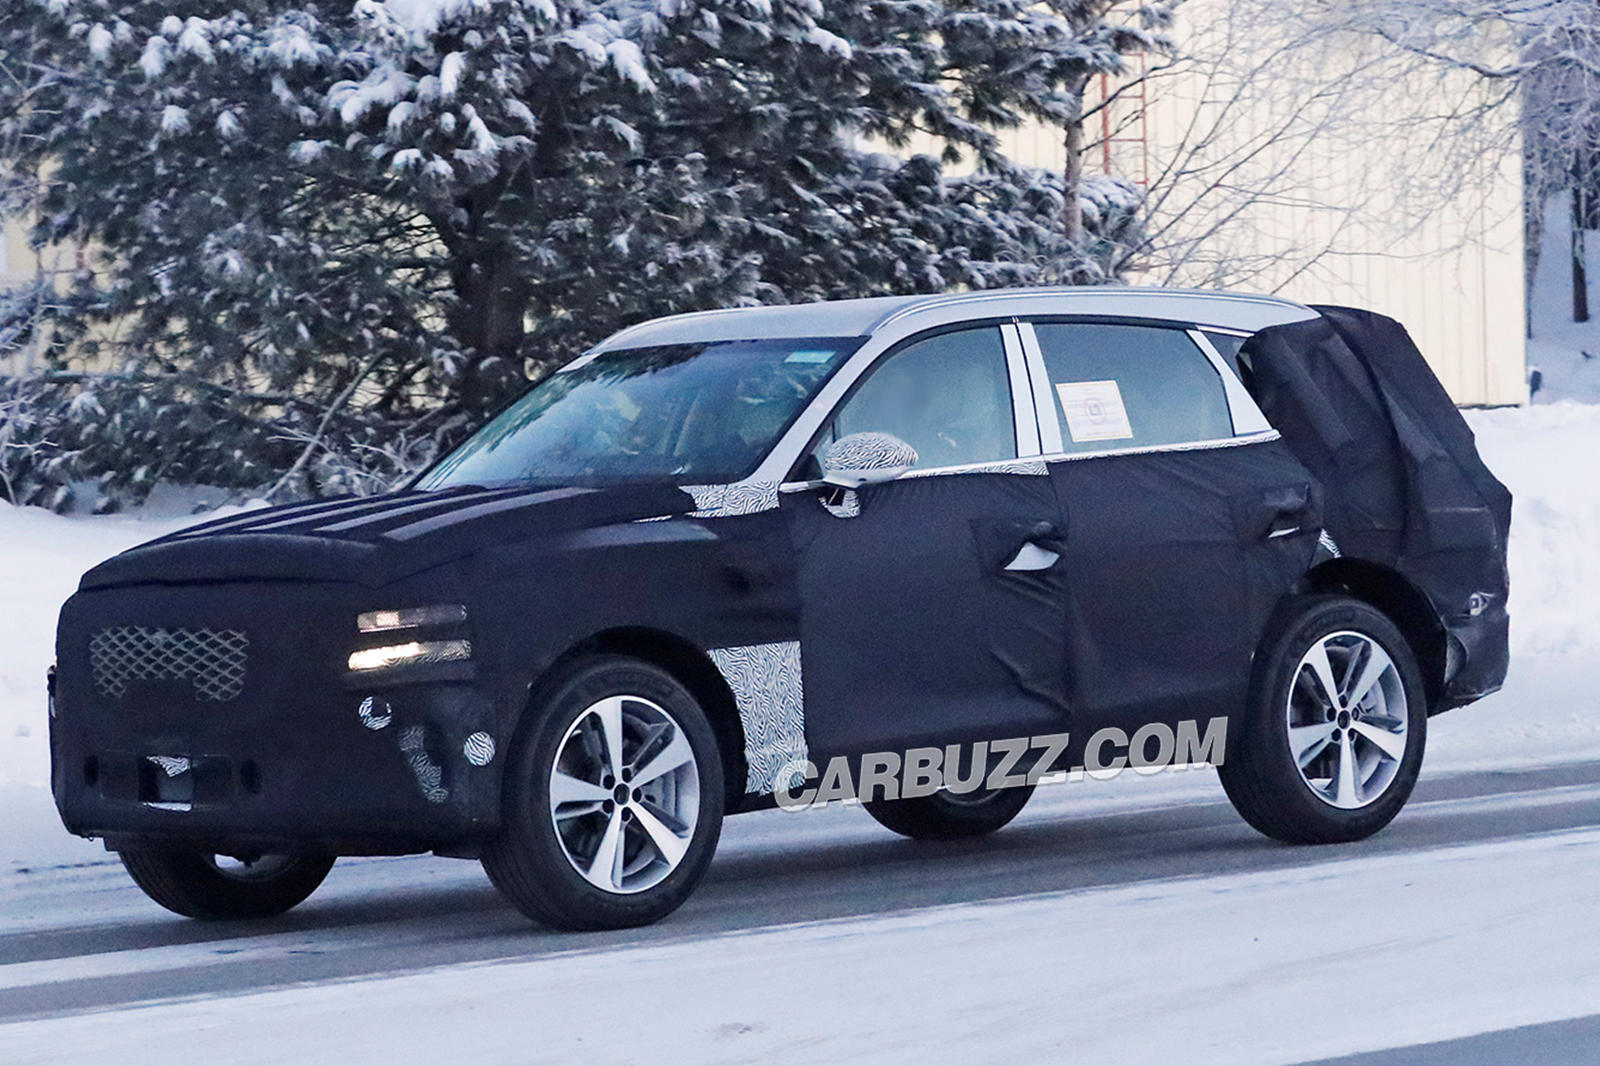 Here S A First Look At The Genesis Gv80 Luxury Suv Carbuzz